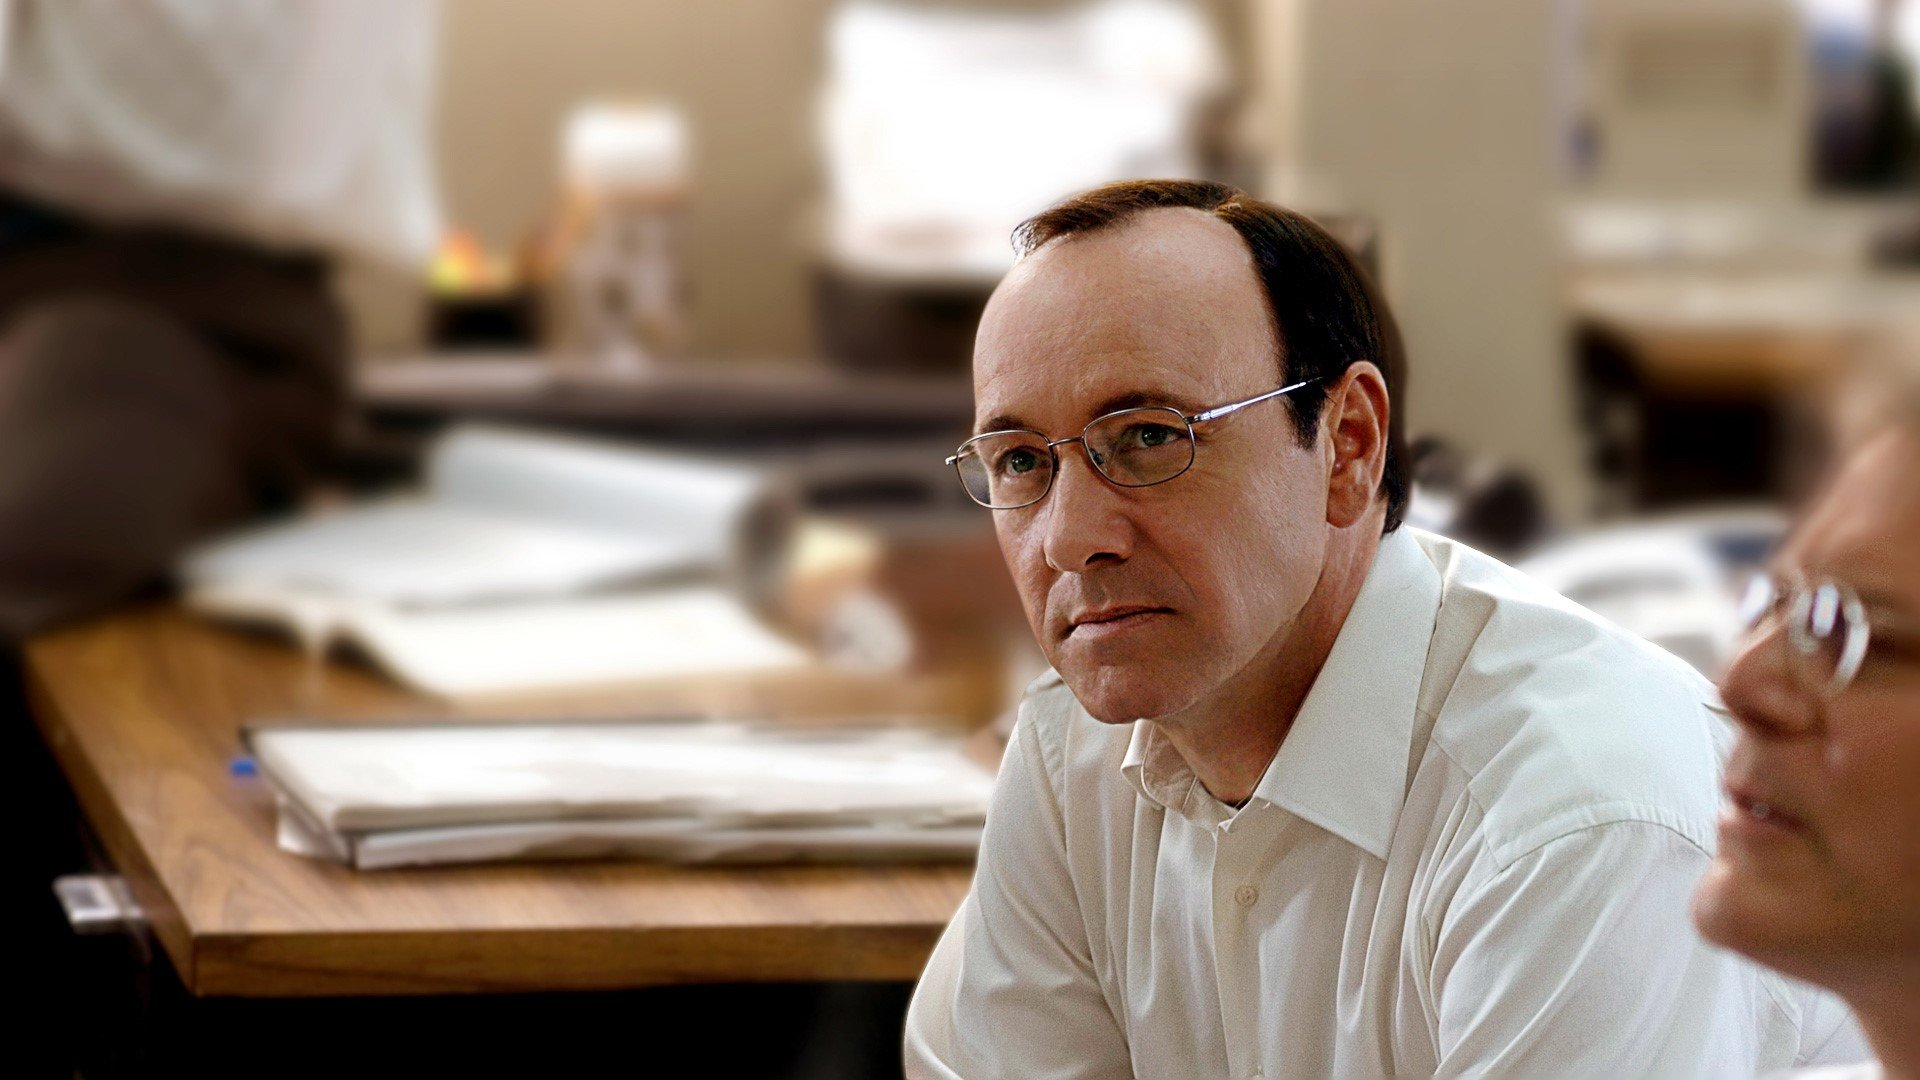 Kevin Spacey Pics